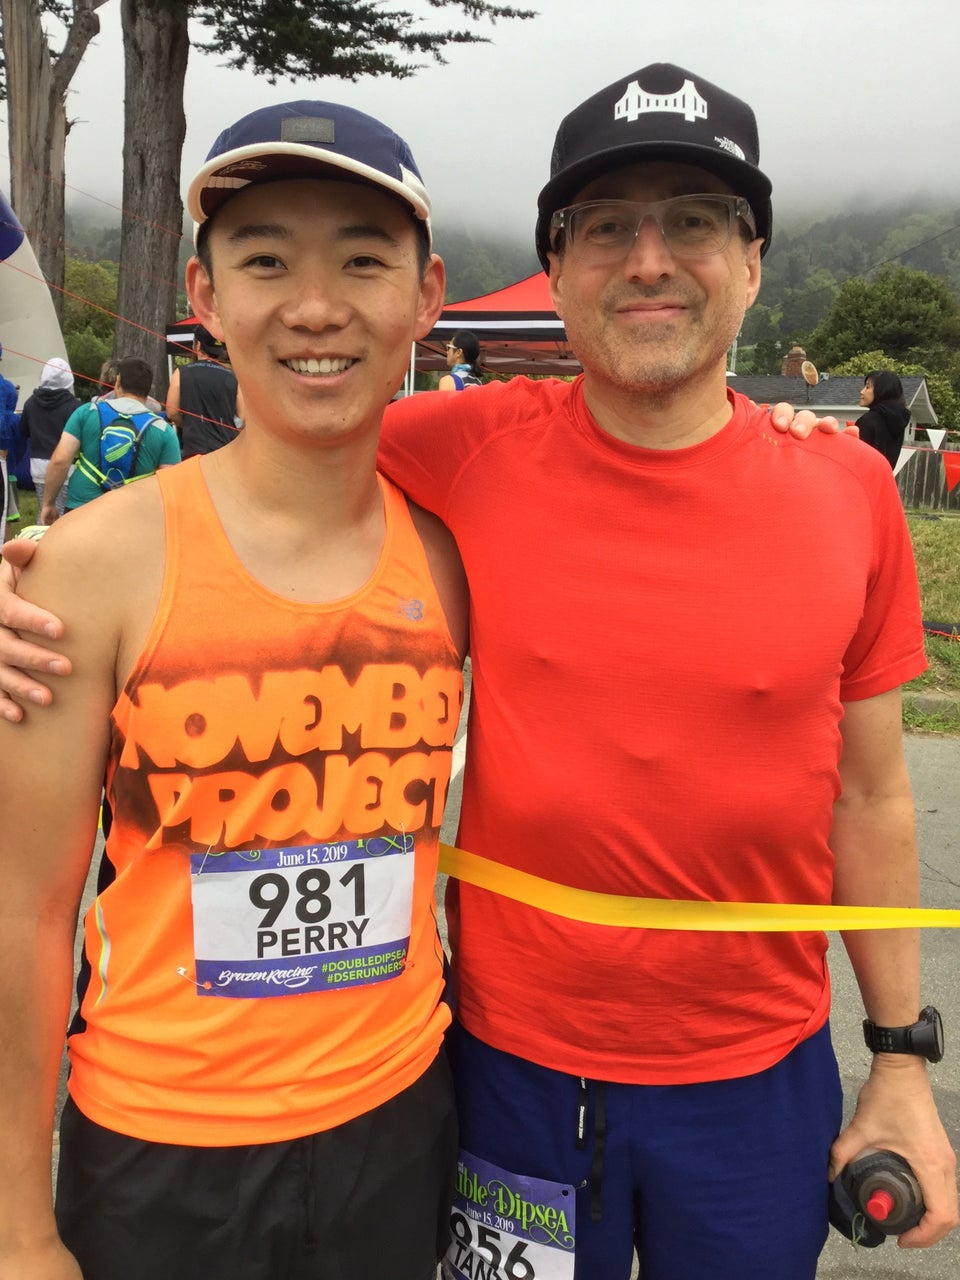 Perry and Tantek near the Double Dipsea race start, Tantek behind the yellow ribbon, race starting area behind them